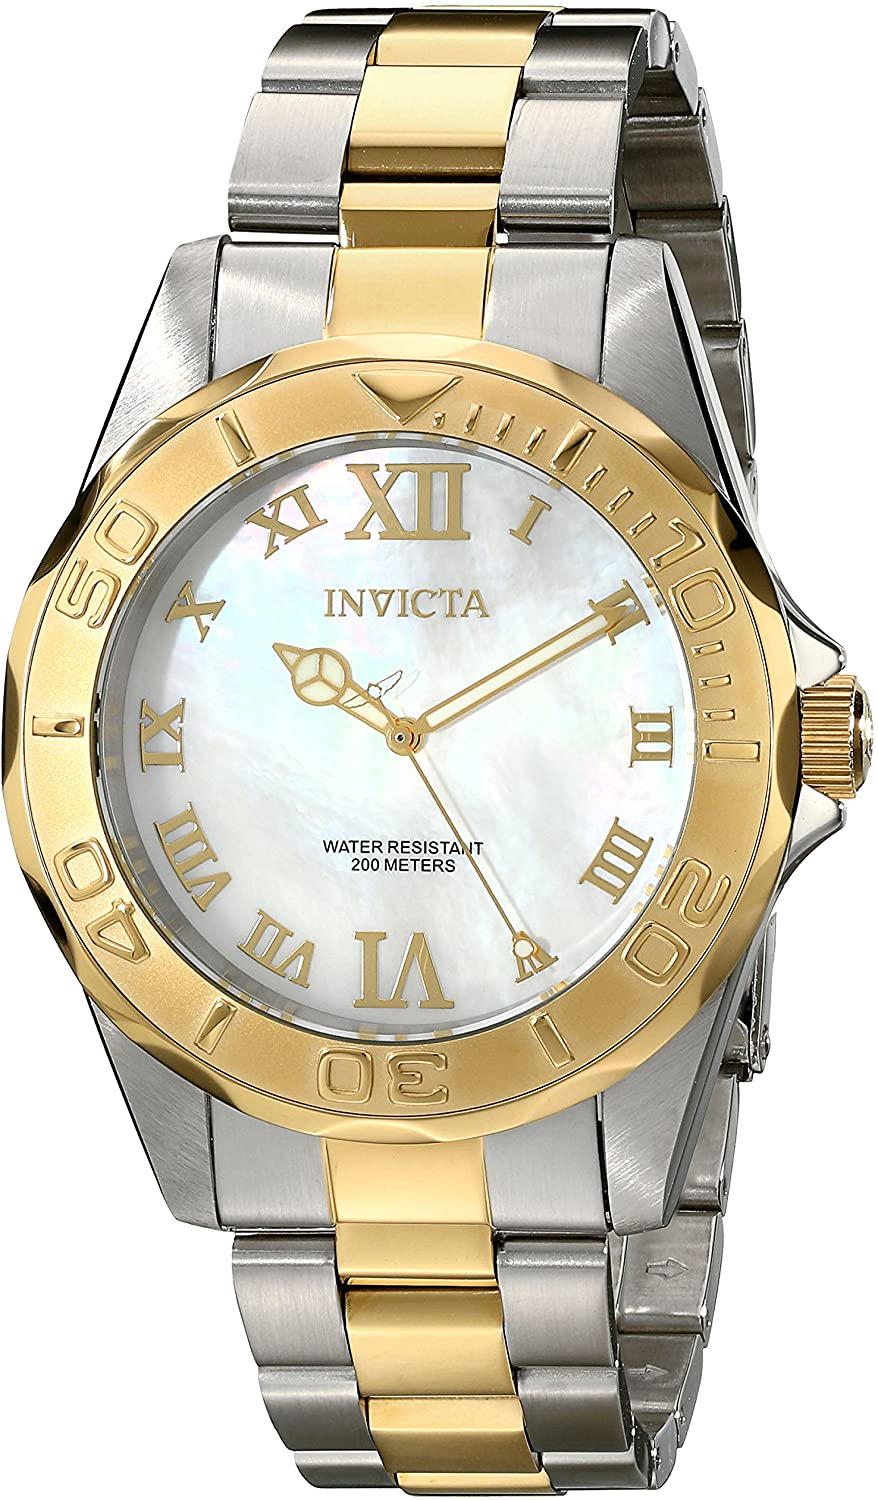 Invicta Men's 17872 Pro Diver Analog Display Swiss Quartz Two Tone Watch